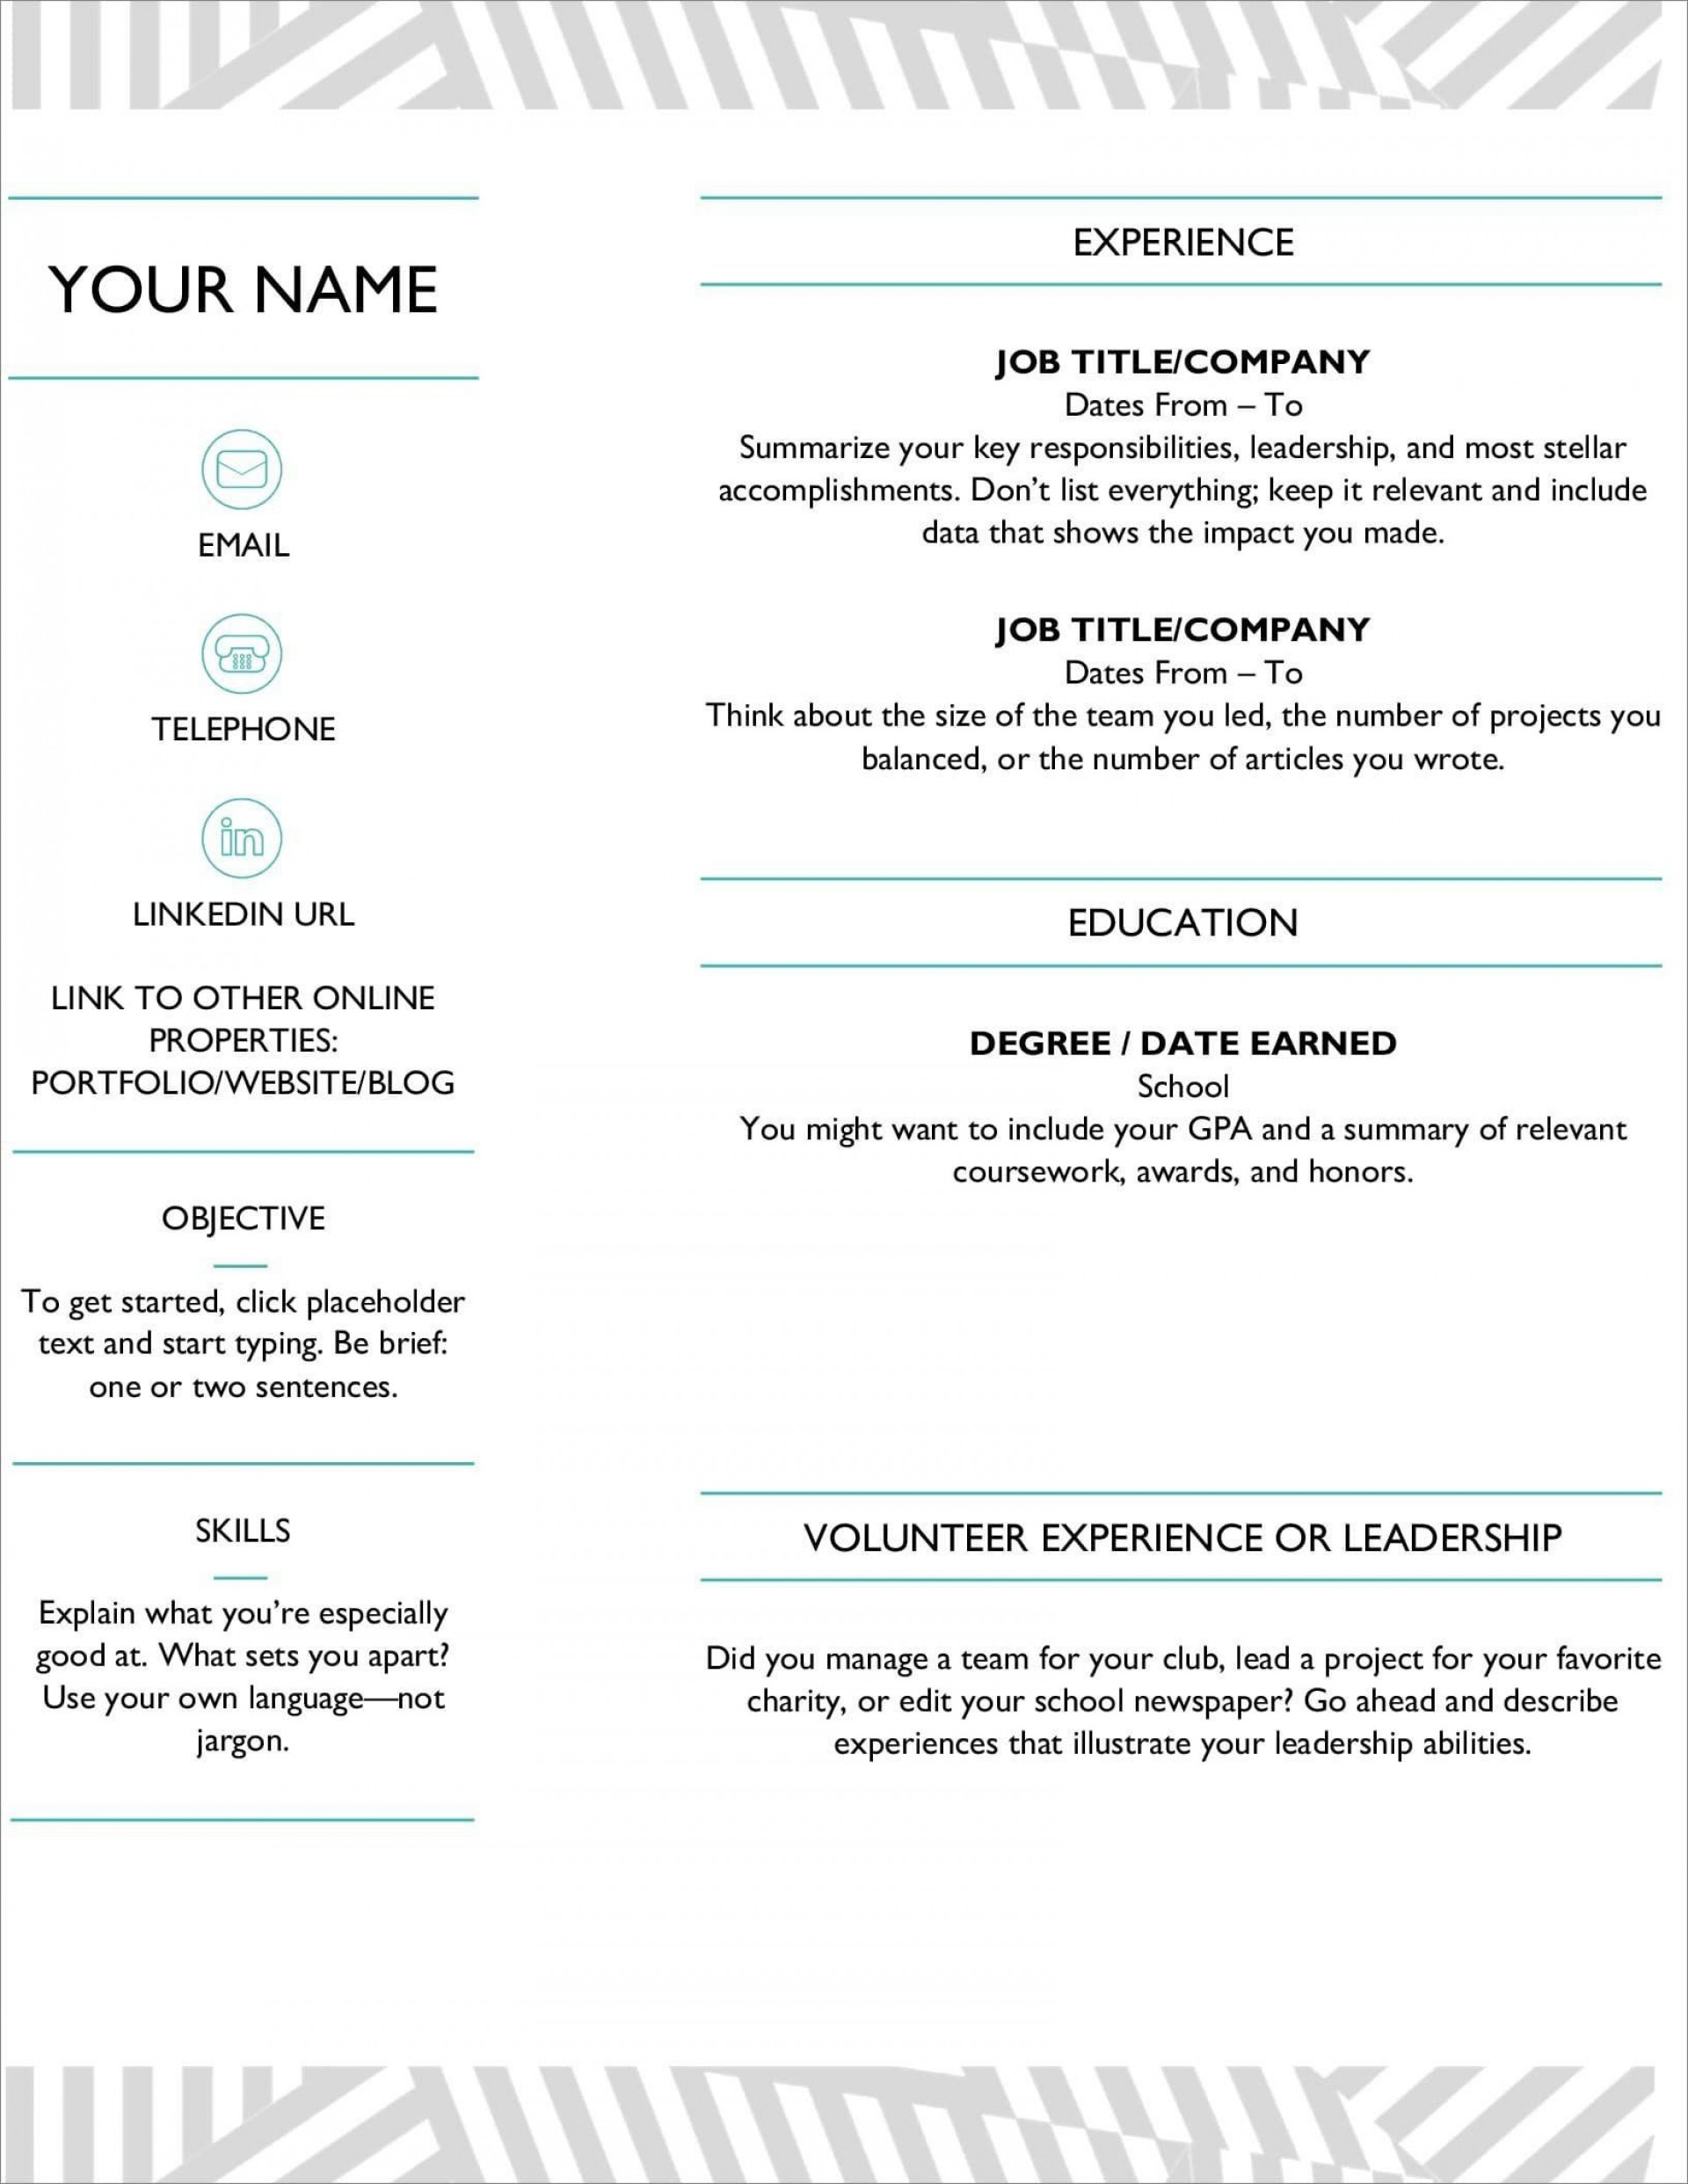 006 Marvelou Resume Microsoft Word Template Highest Clarity  Cv/resume Design Tutorial With Federal Download1920